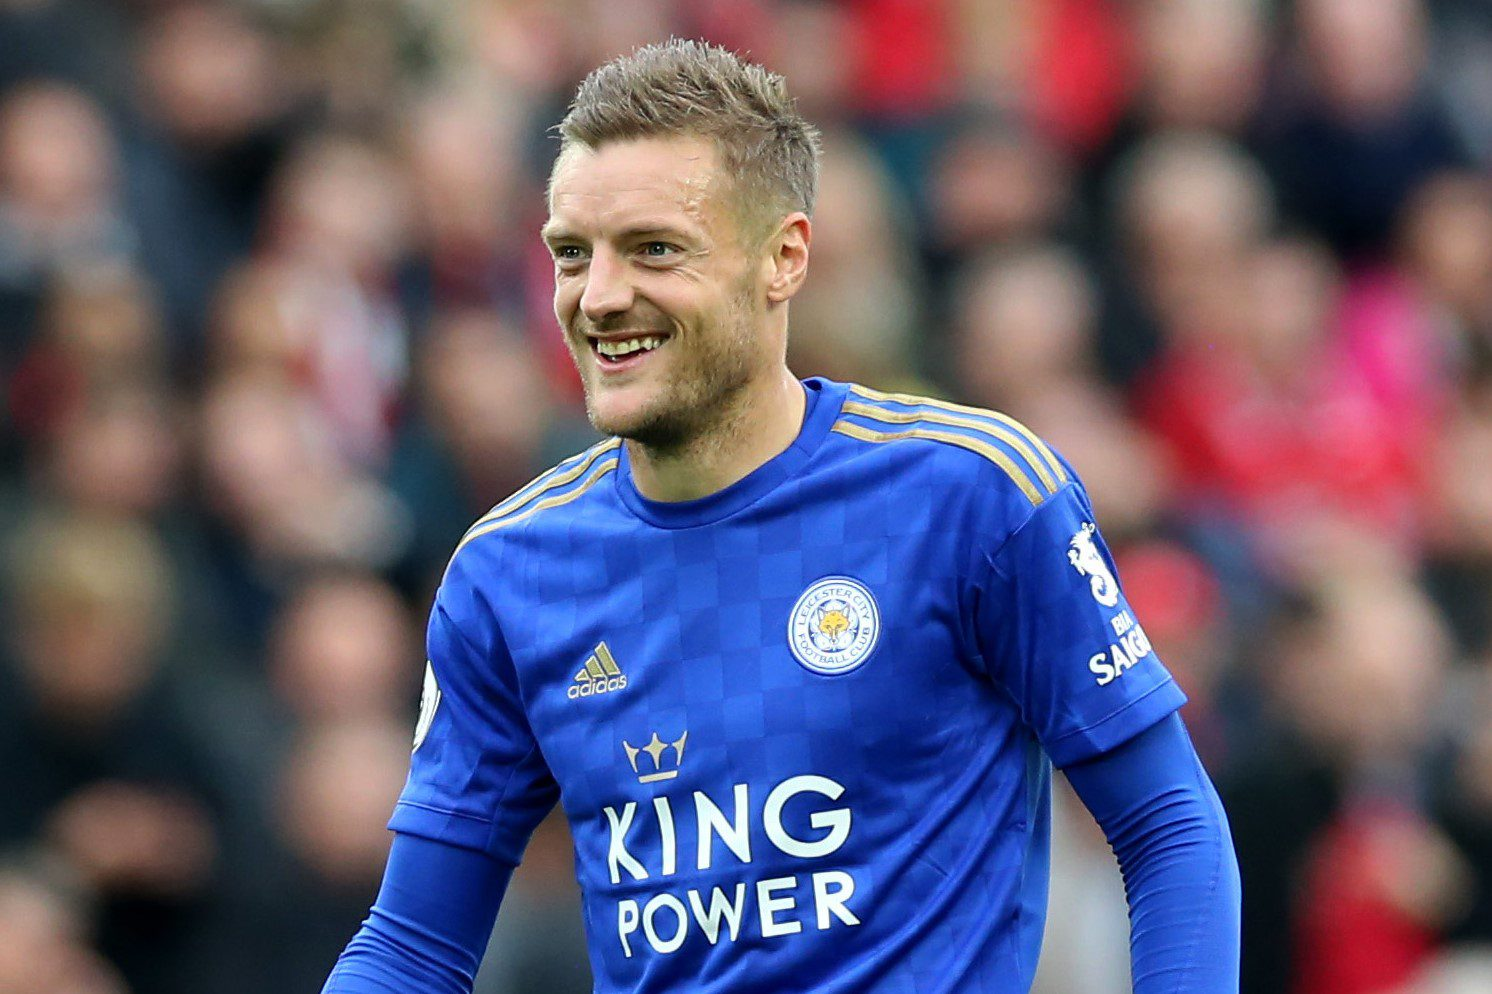 Jamie Vardy from Leicester City